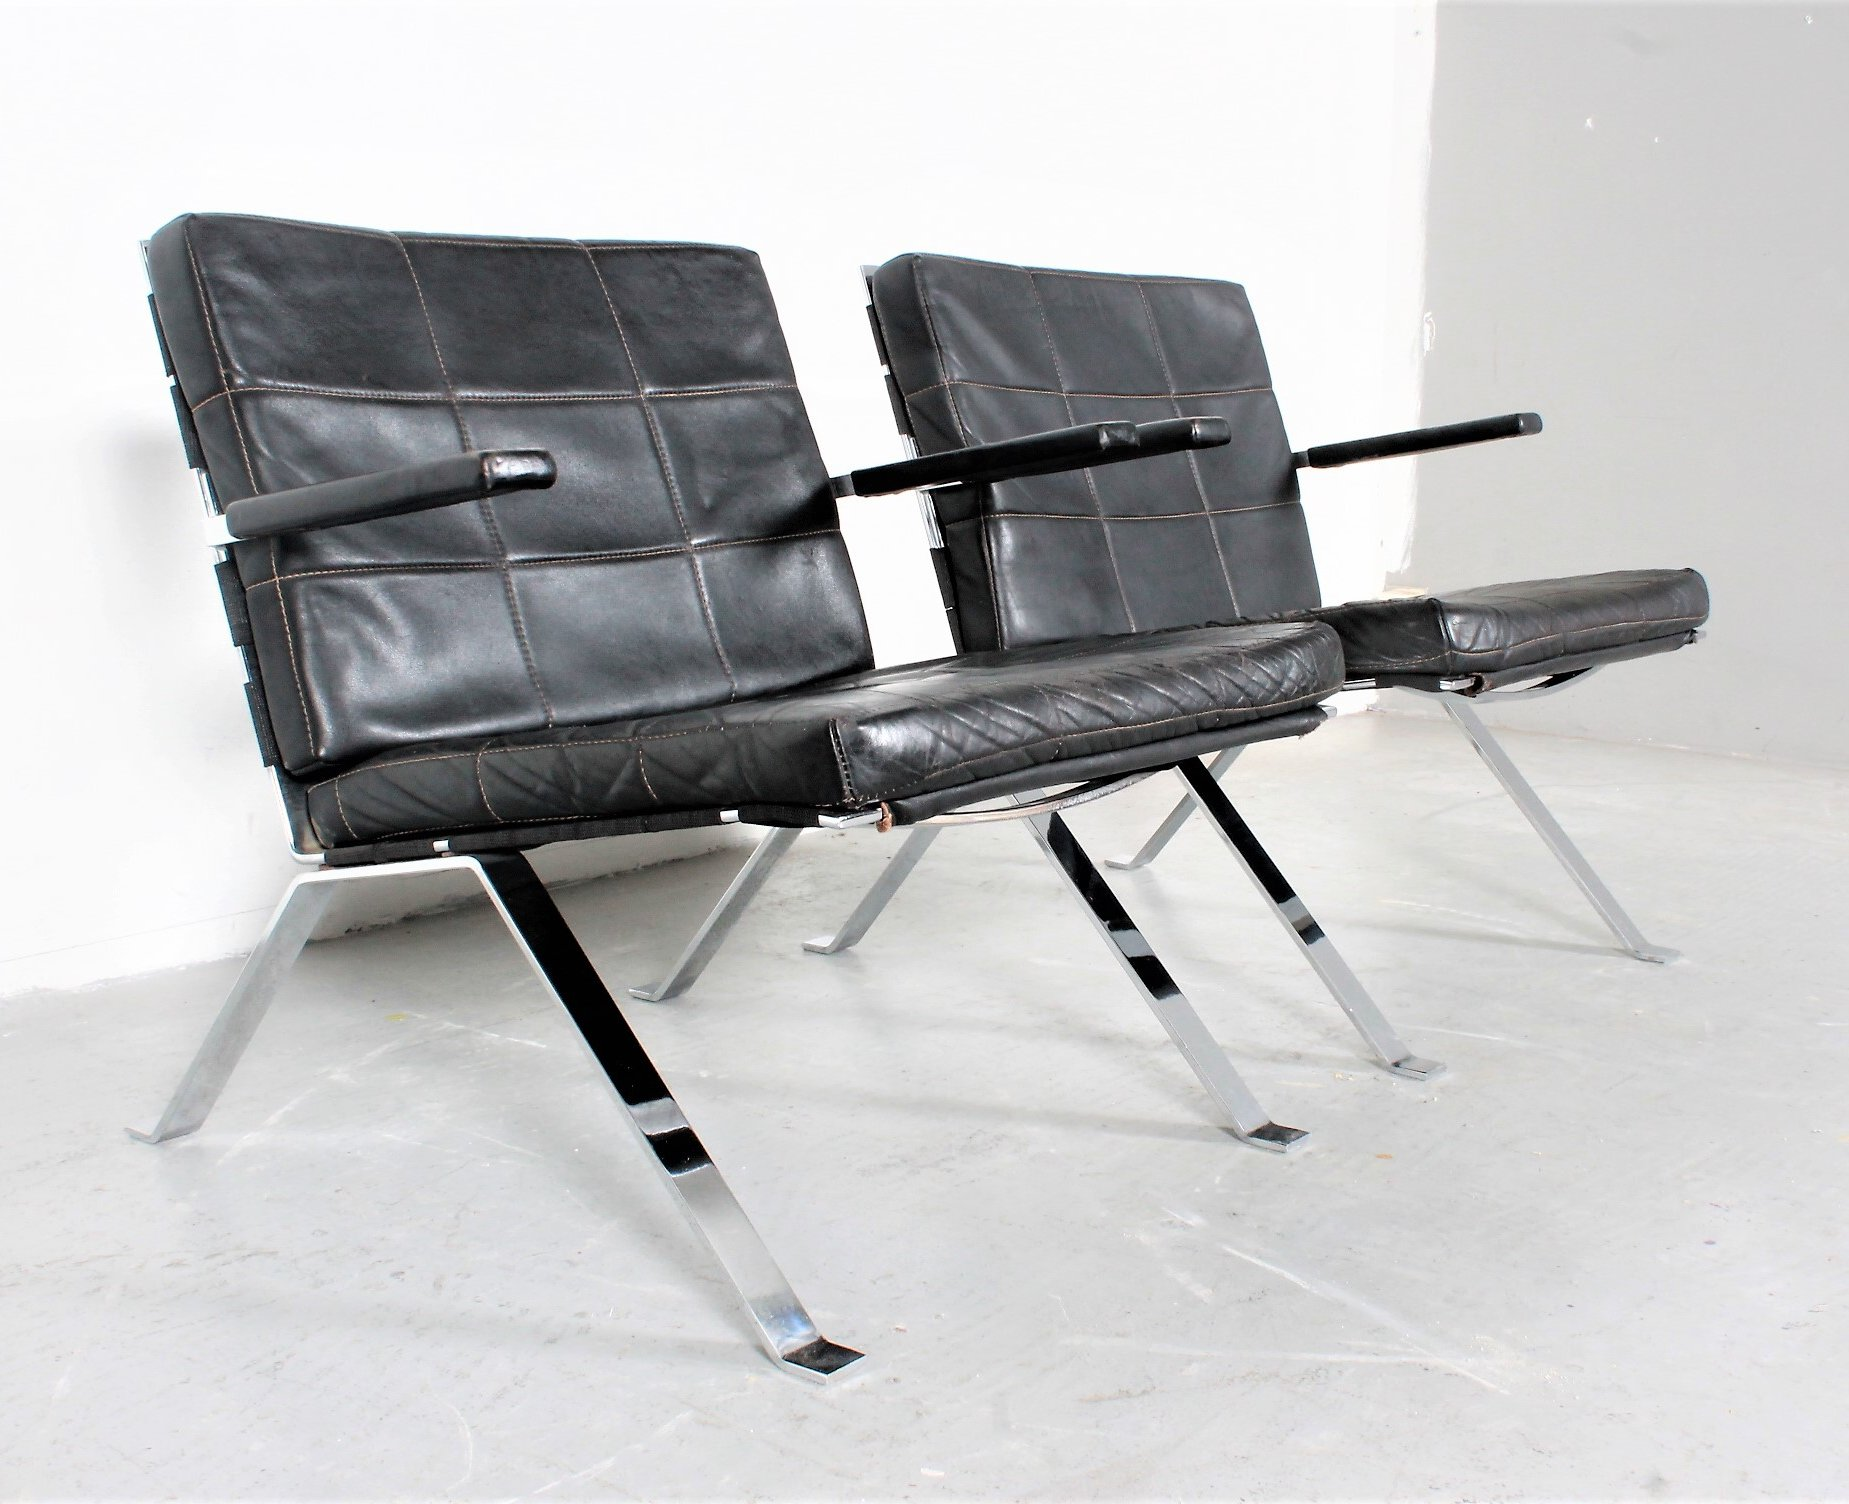 Pair Of U0027Euro Chair 1600u0027 Lounge Chairs By Hans Eichenberger For ...